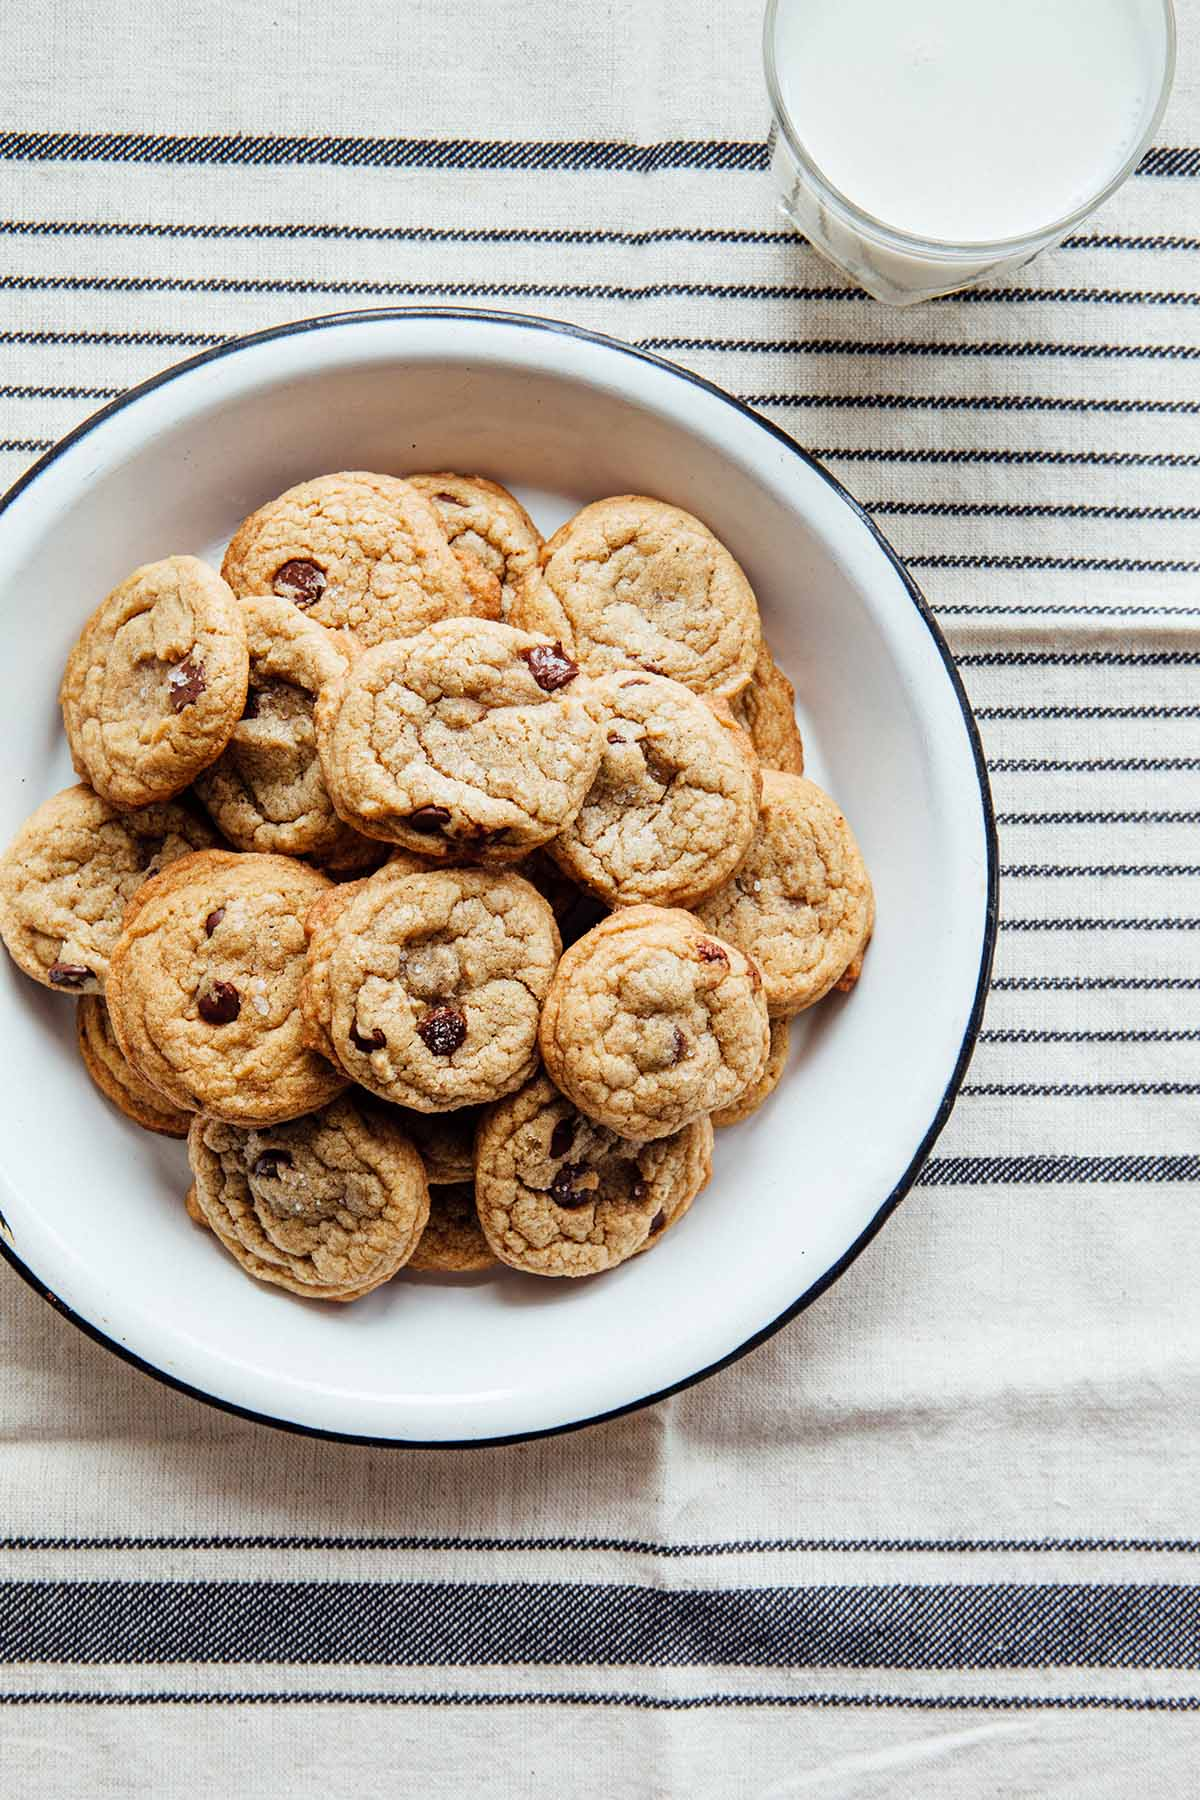 A plate filled with brown butter chocolate chip cookies.